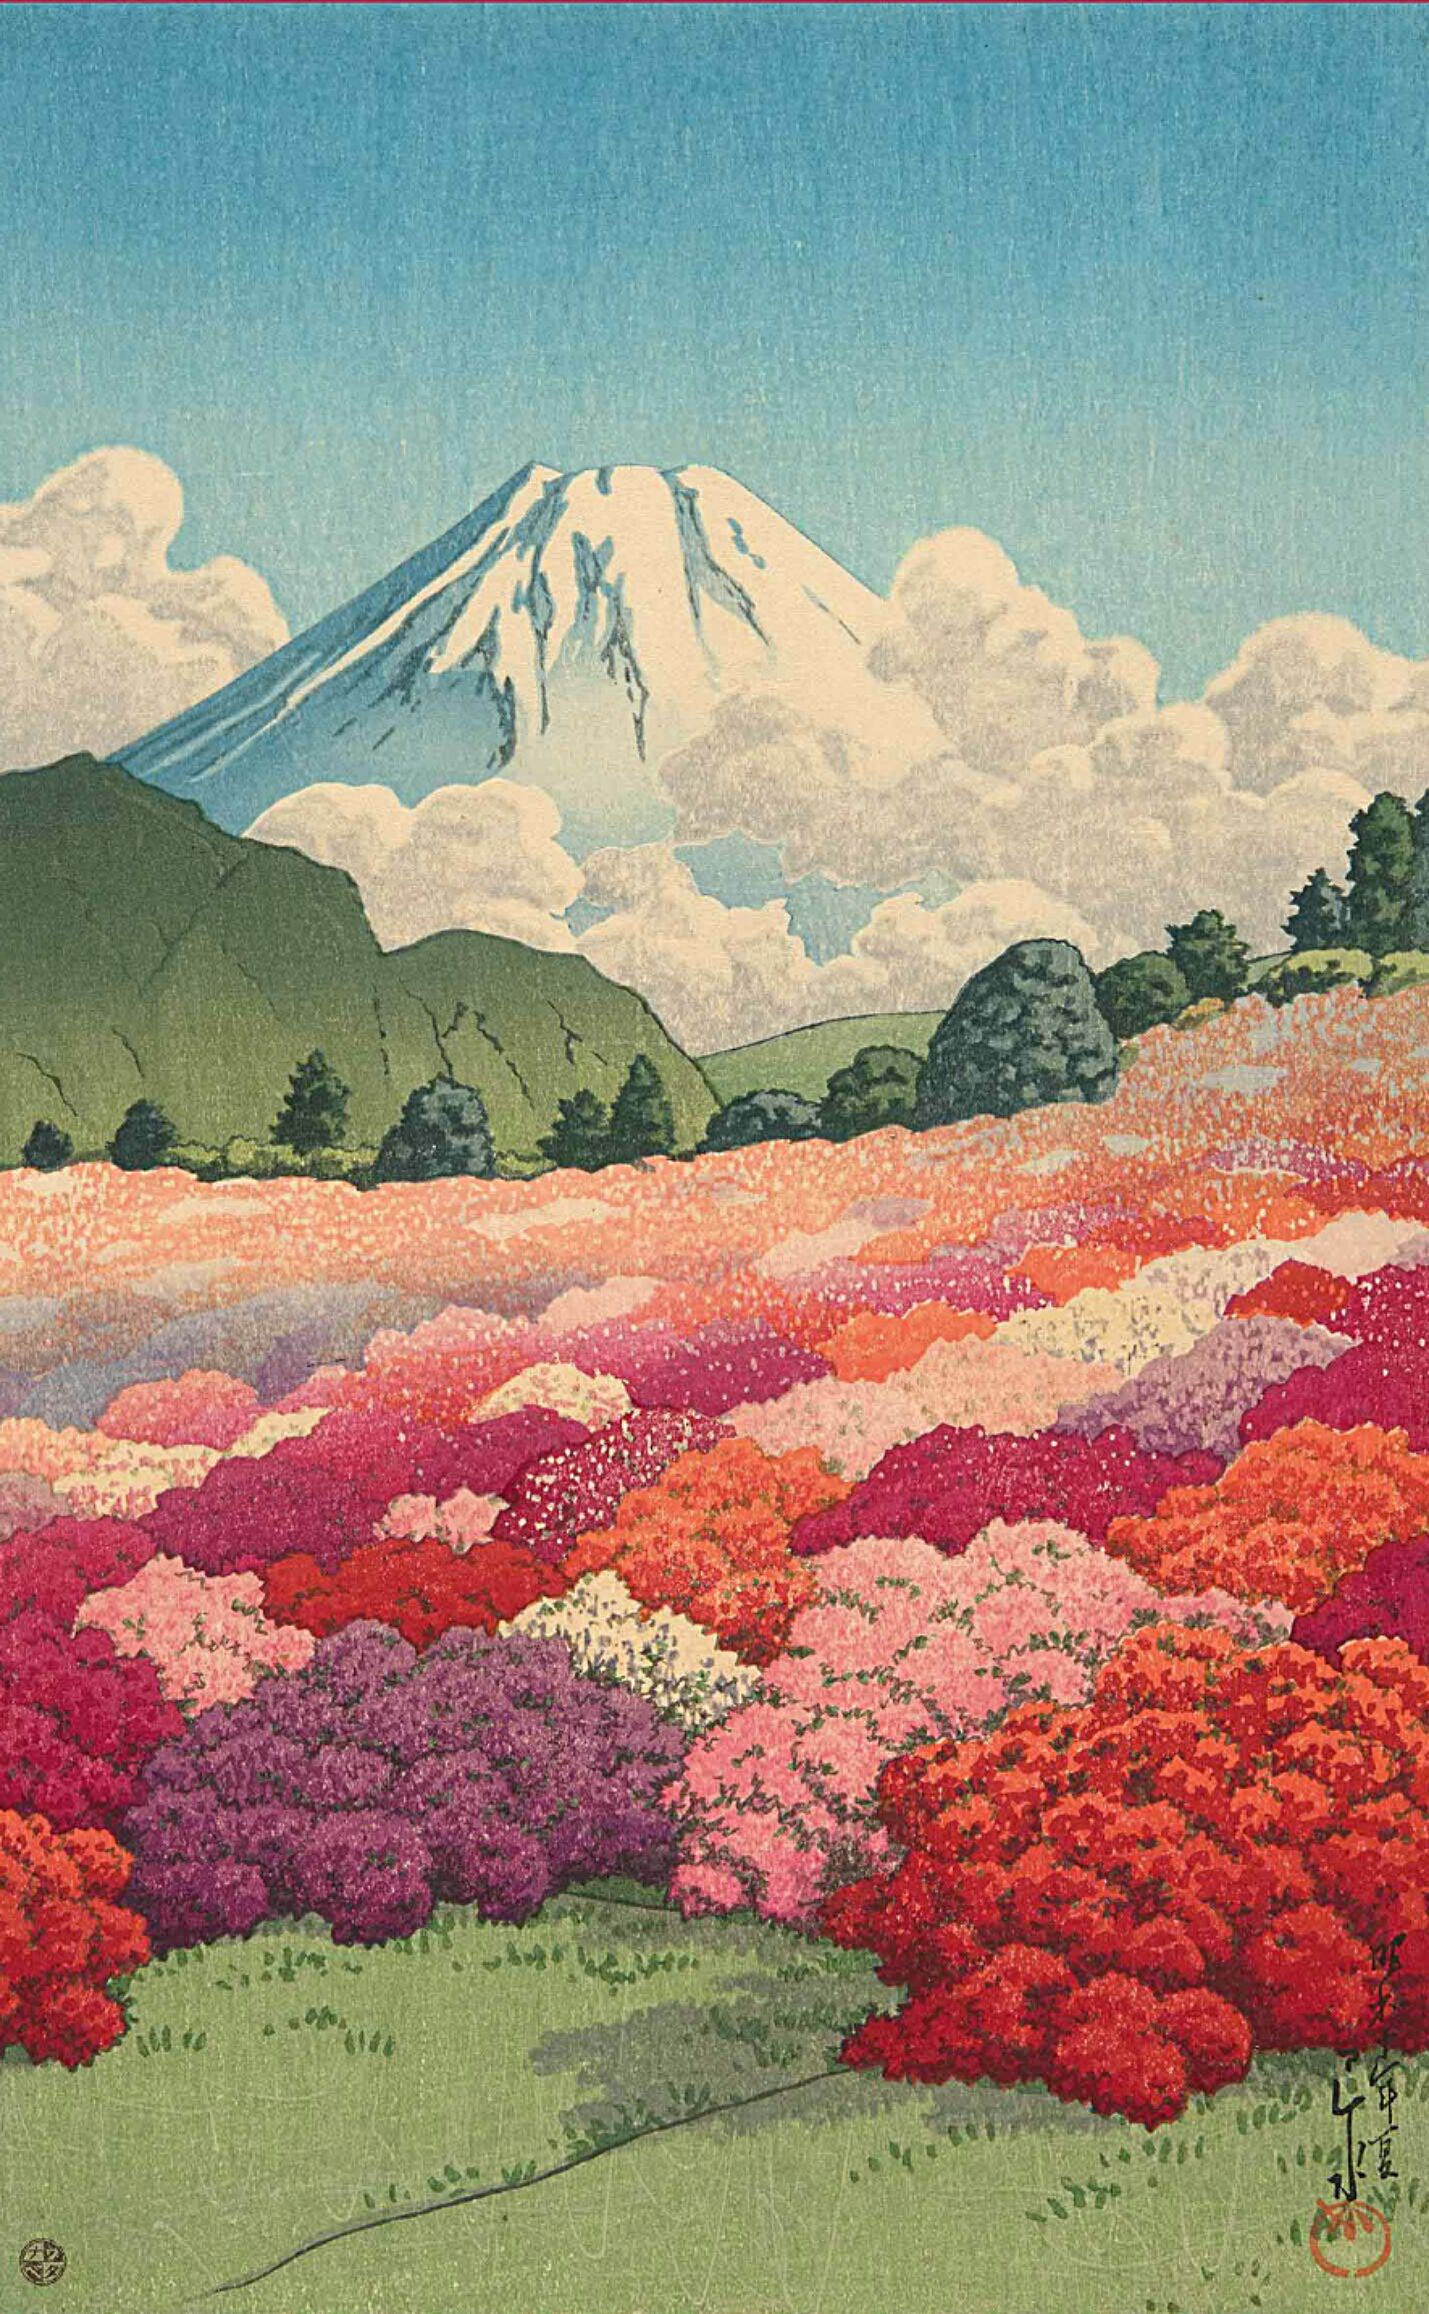 Looking At Mt Fuji From The Azalea Garden Japan 1935 By Kawase Hasui In 2020 Japanese Art Art Art Wallpaper